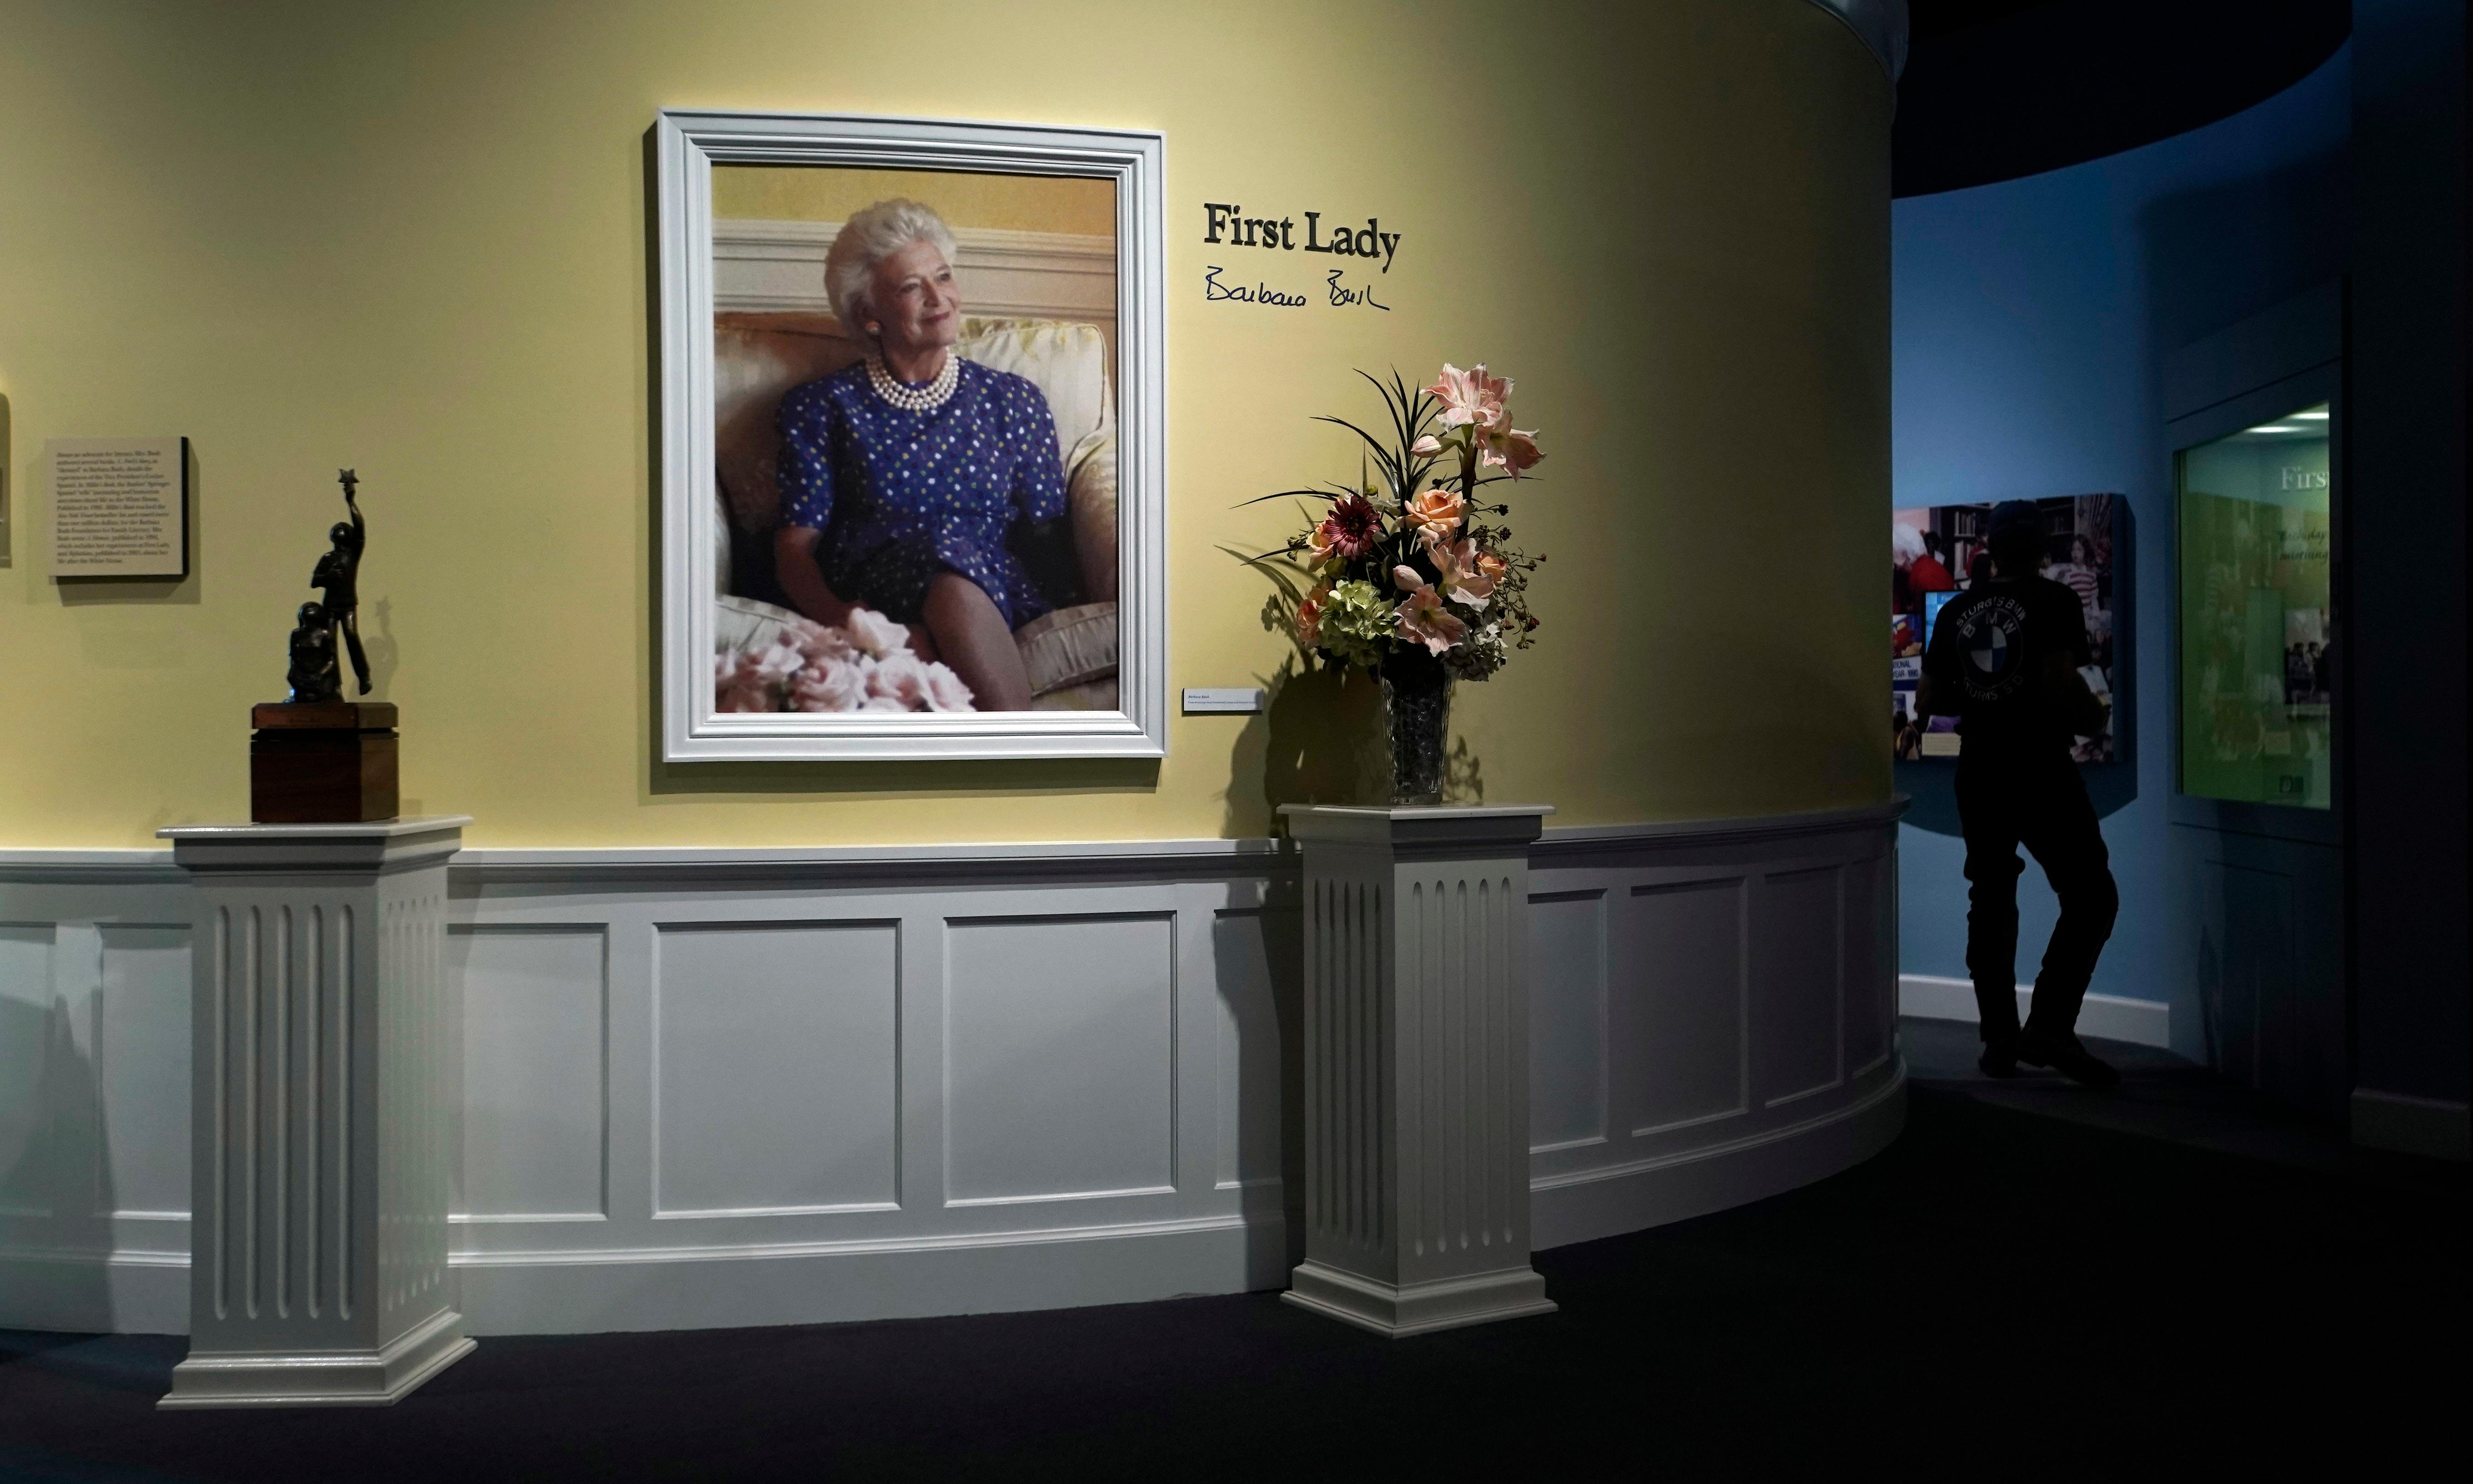 Visitors walk through an exhibit for former first Lady Barbara Bush at the George Bush Presidential Library and Museum Wednesday, April 18, 2018, in College Station, Texas. Barbara Bush died Tuesday, April 17, 2018, at the age of 92. (AP Photo/David J. Phillip)